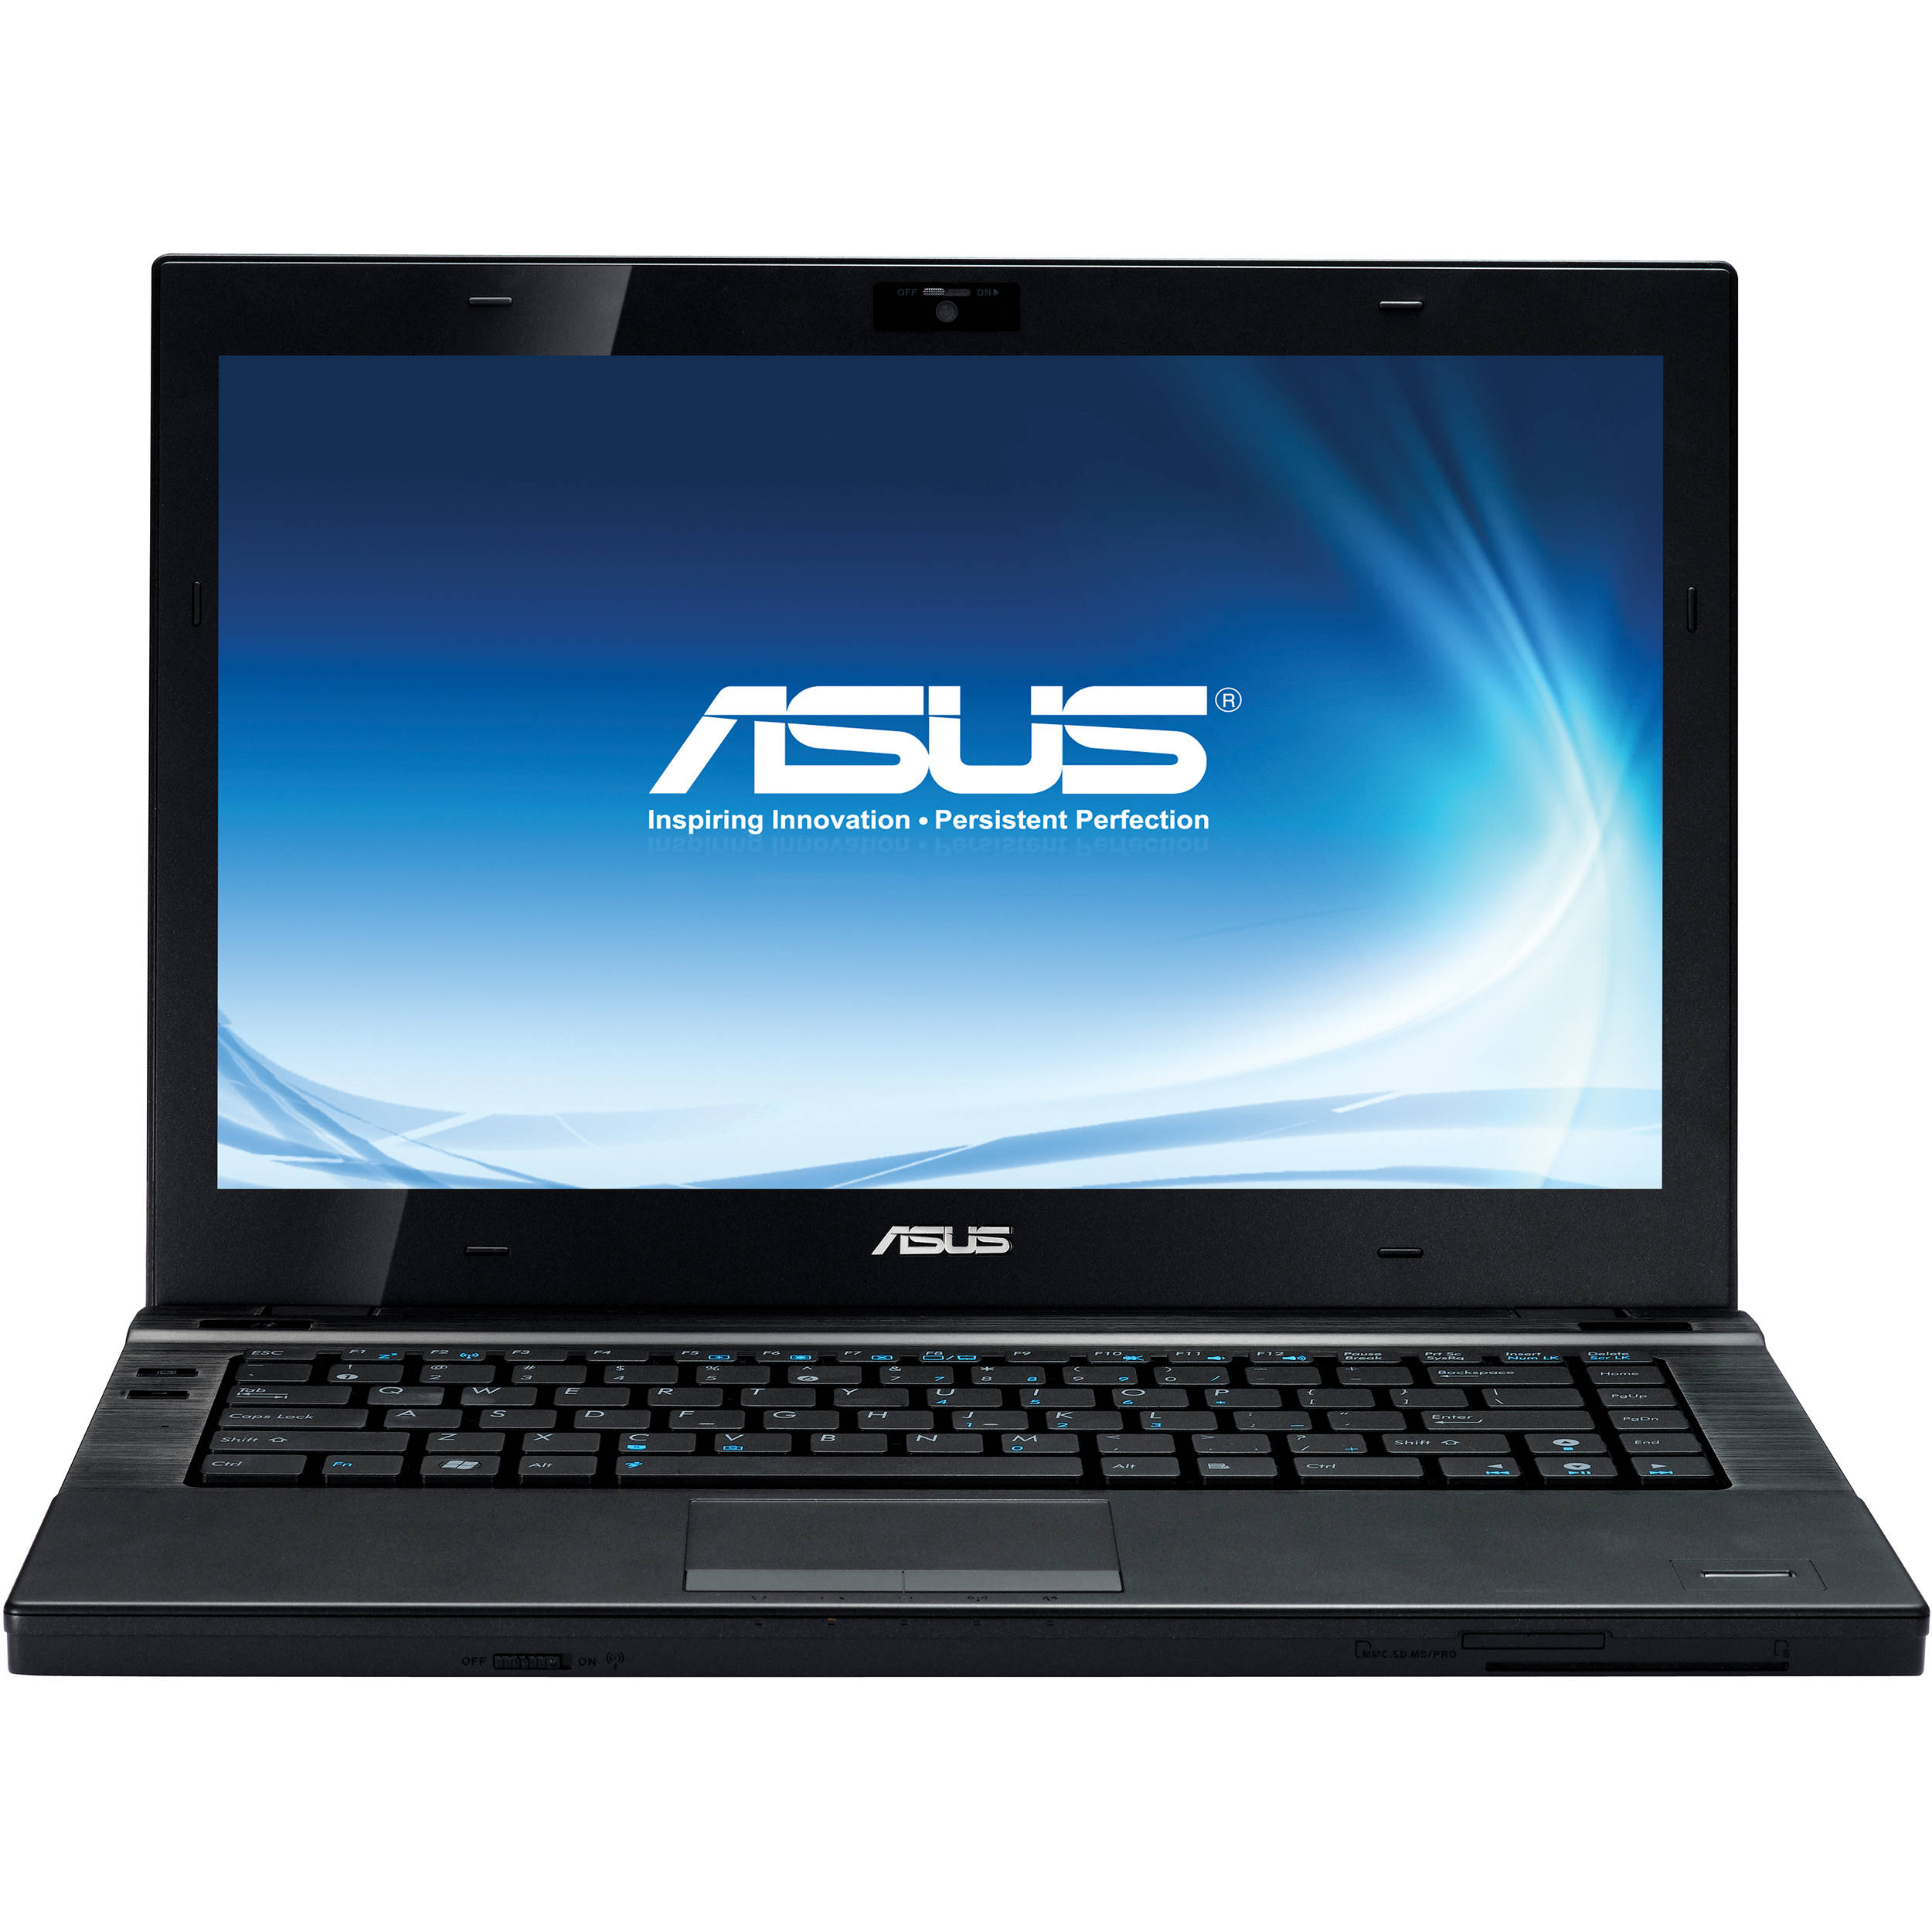 ASUS A1B AUDIO DRIVER WINDOWS 7